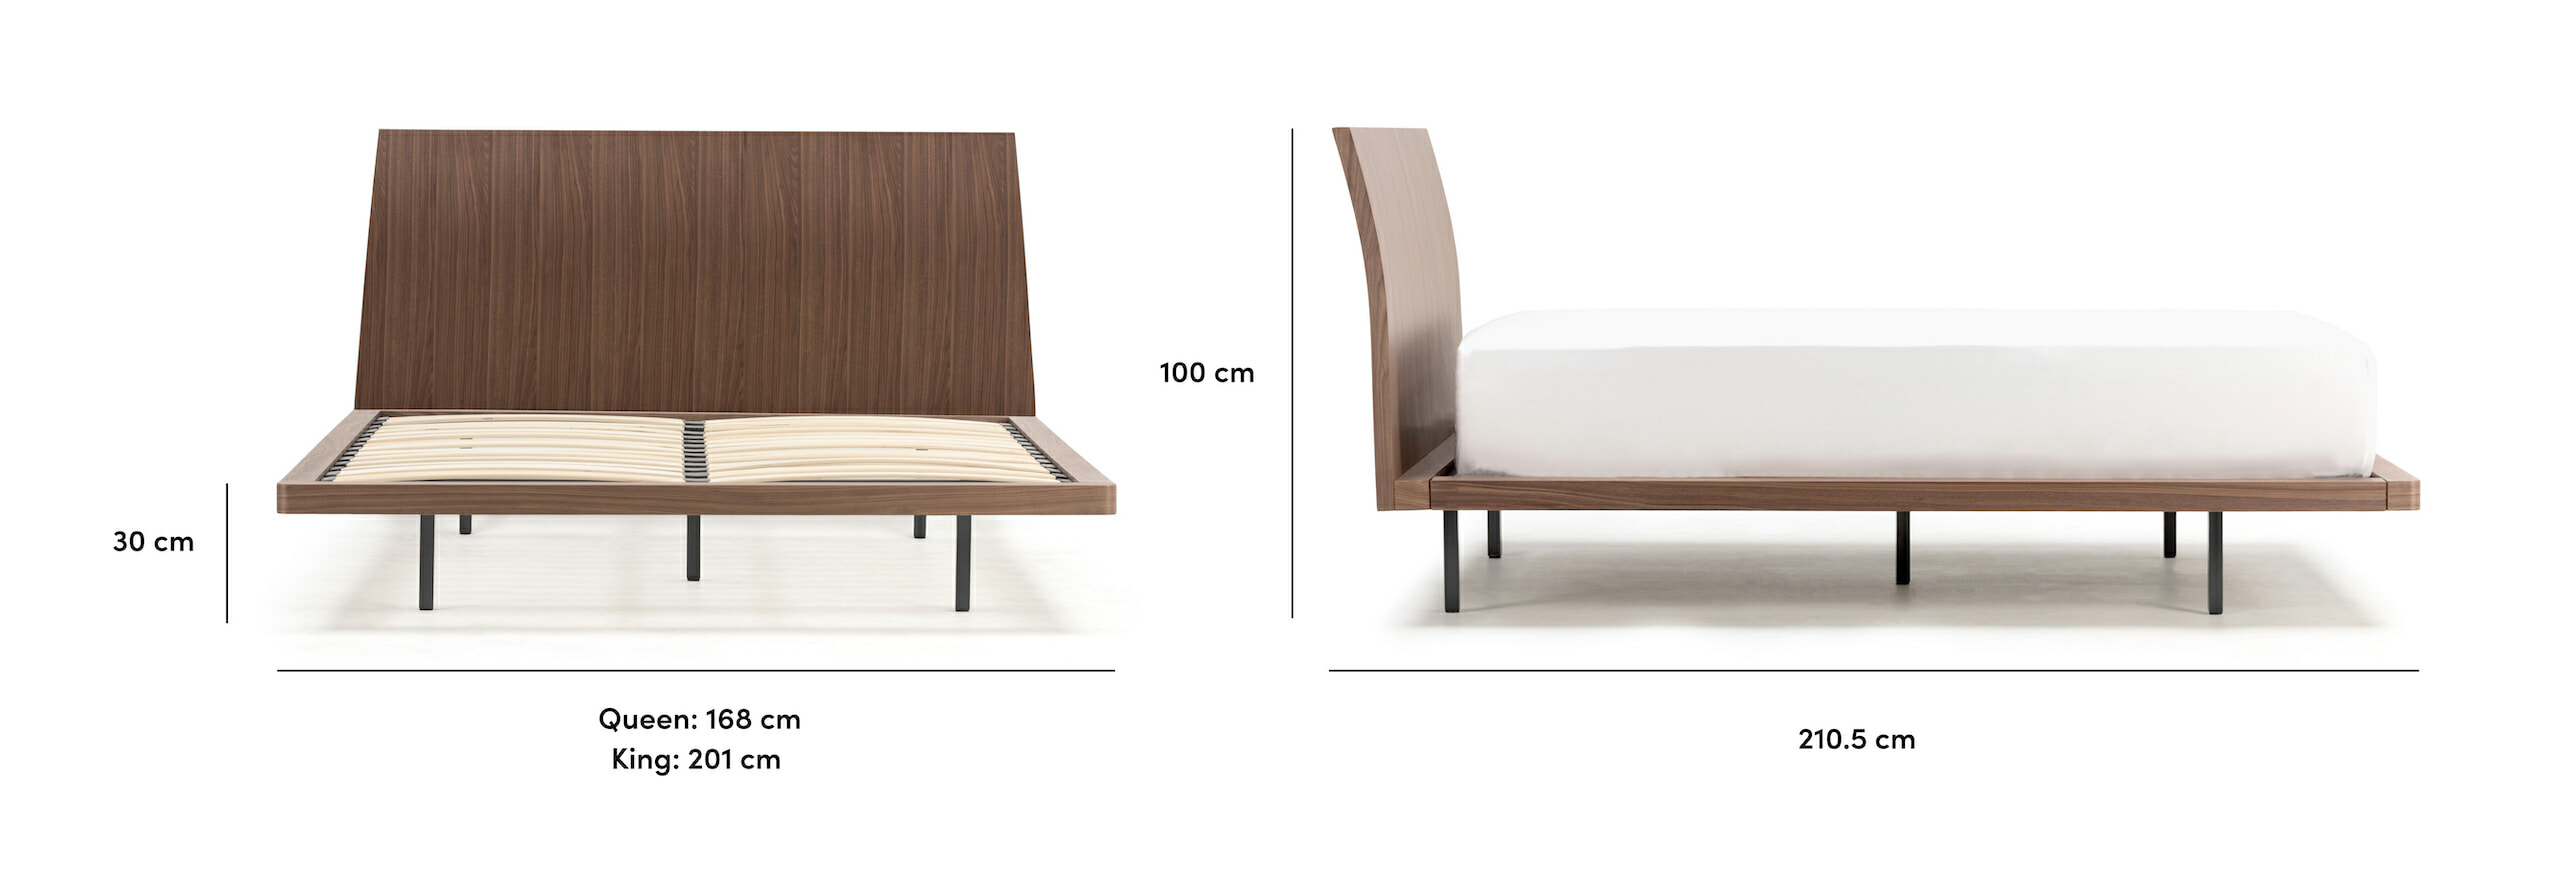 Sunset bed with headboard Singapore dimensions